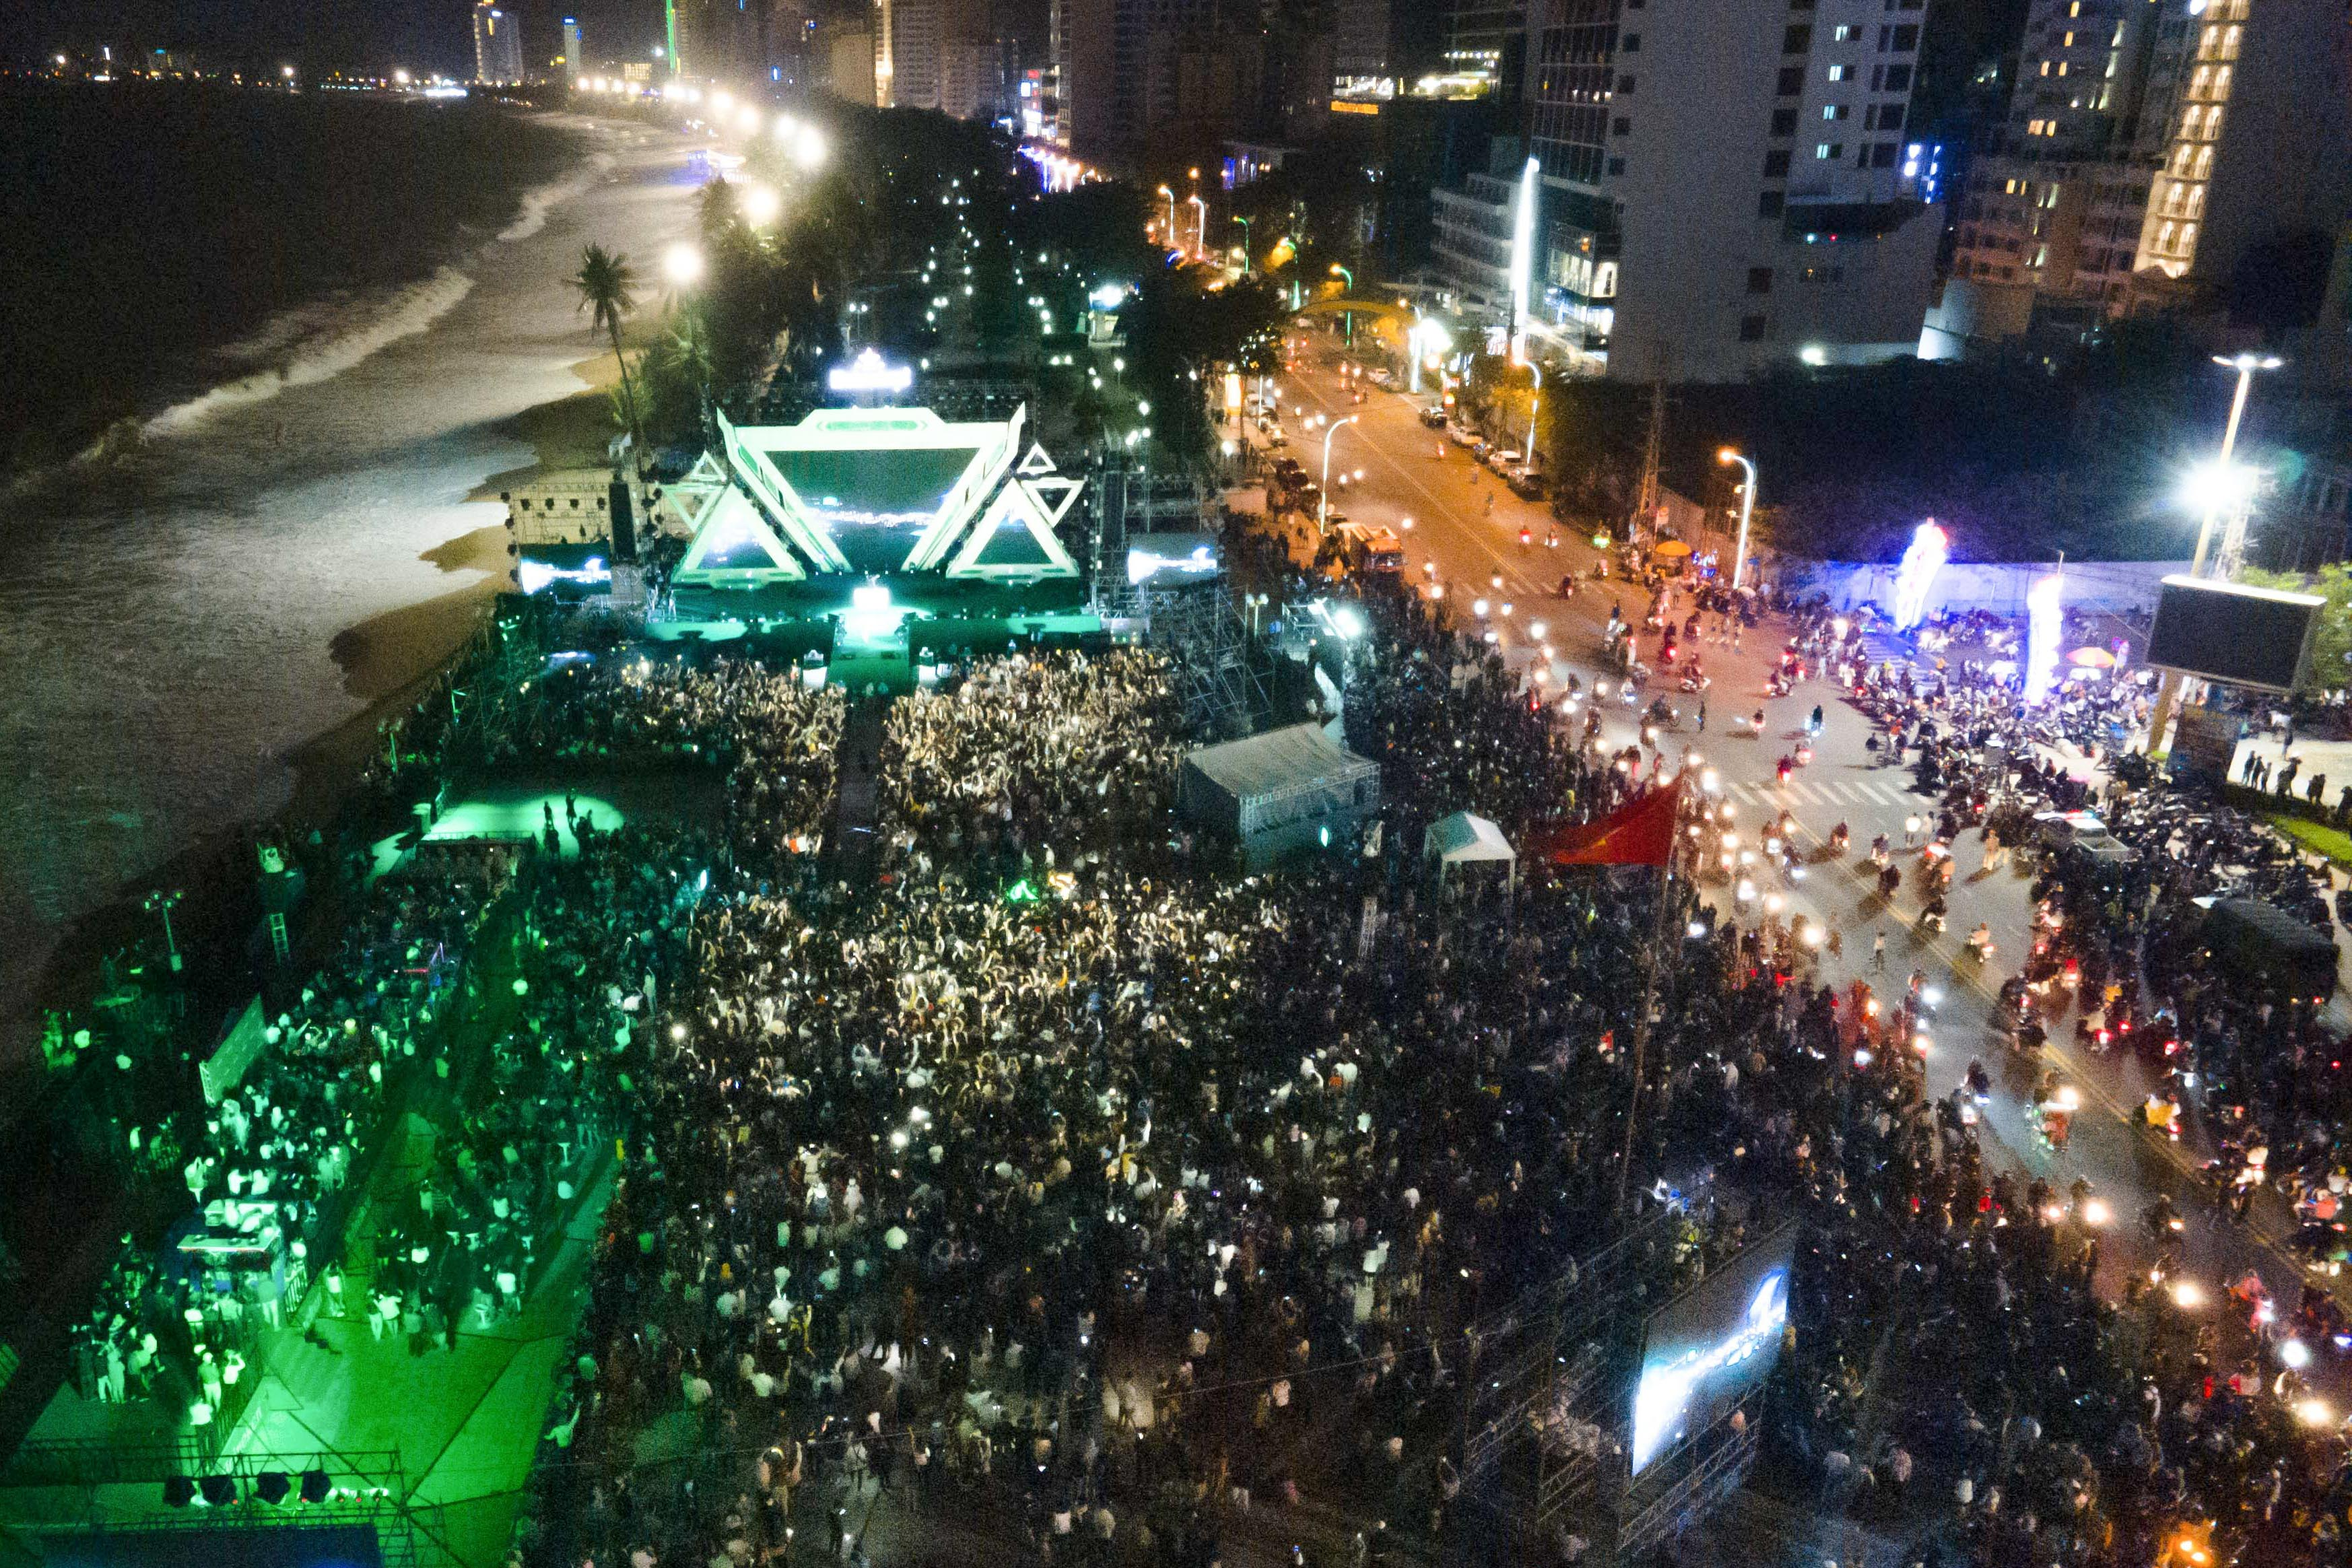 Thousands of people gather at 2-4 Square to see music show and countdown event